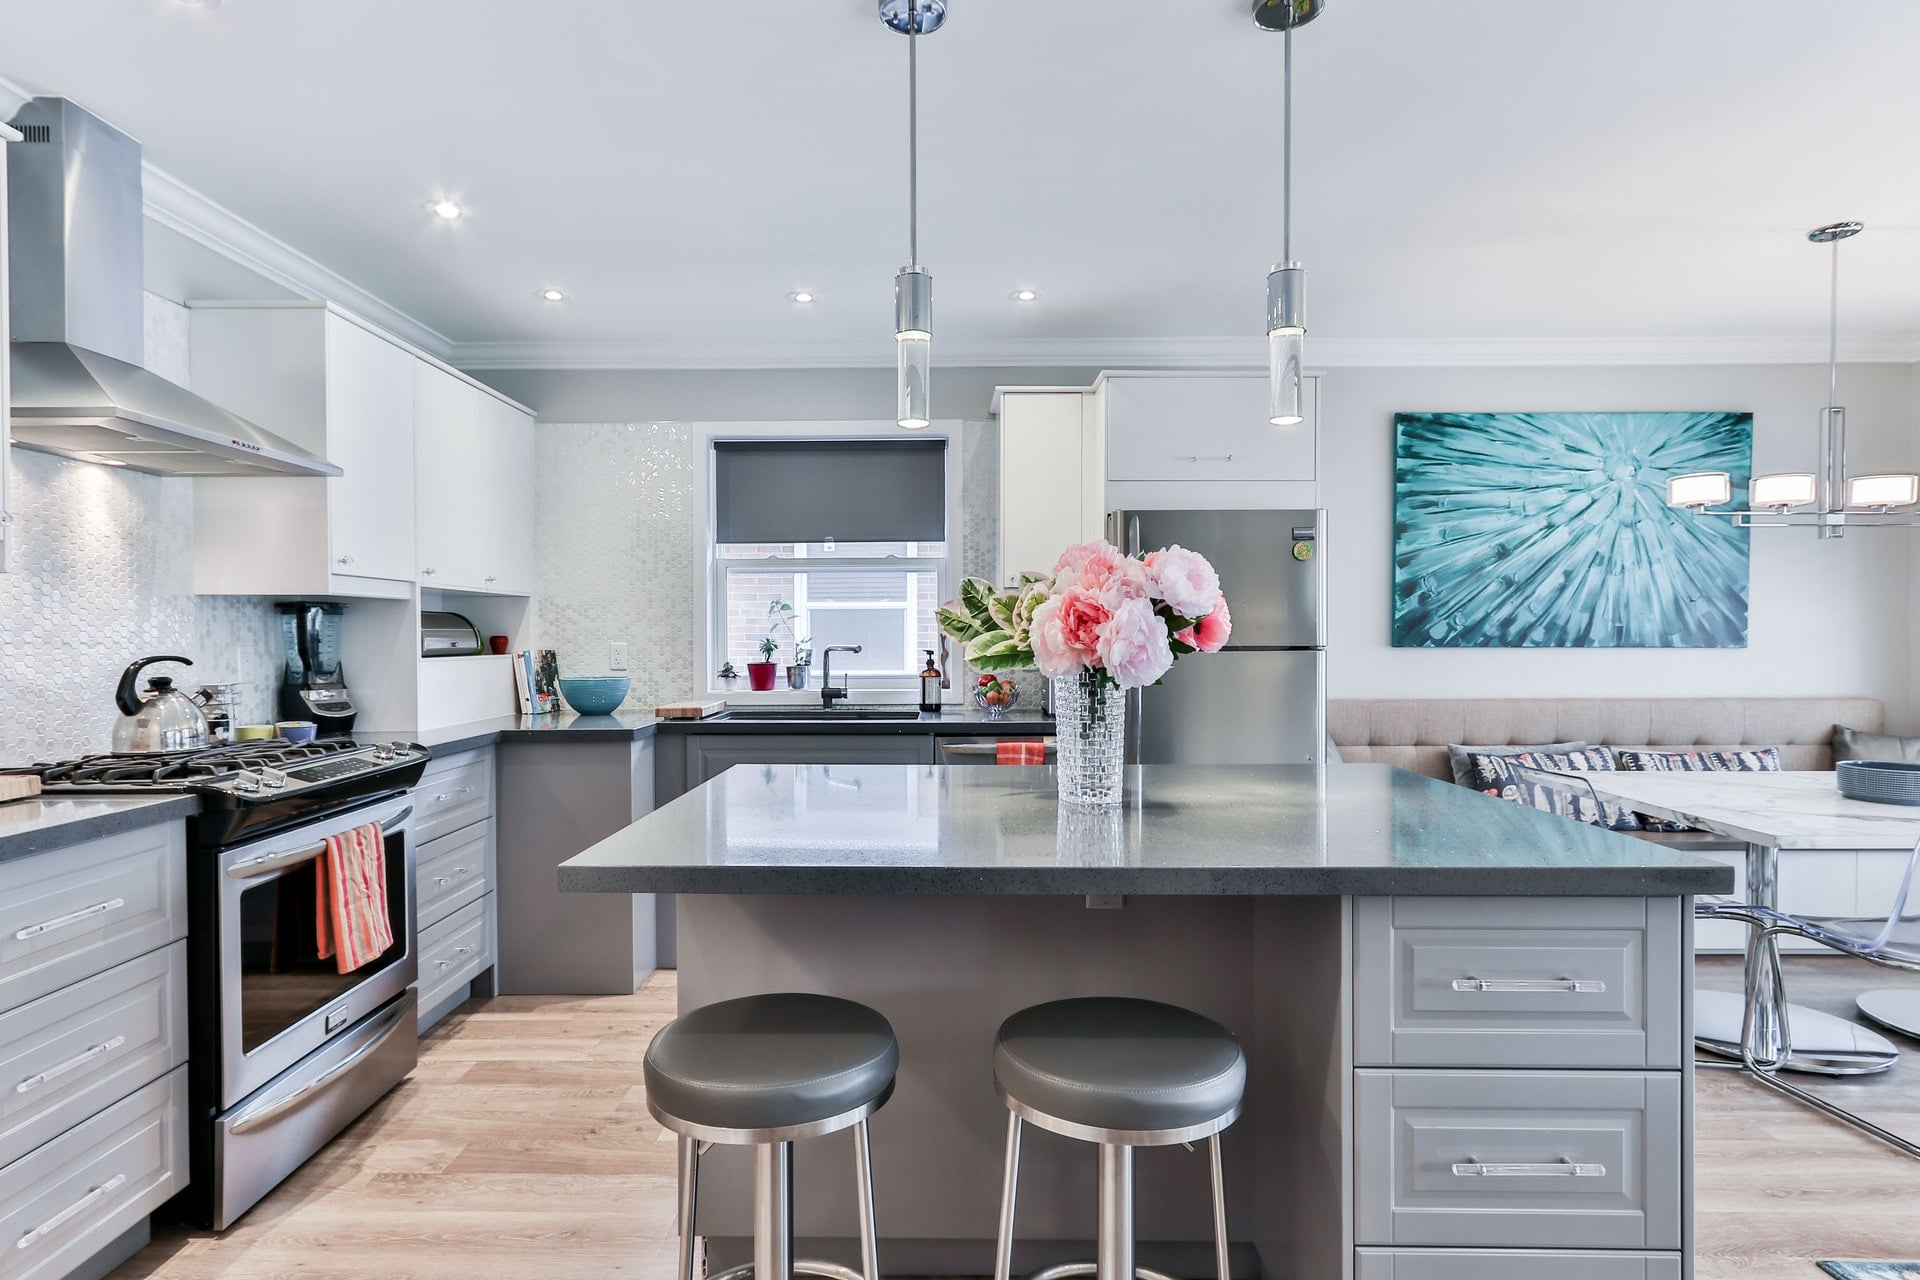 5 Simple Tips To Update Your Kitchen Design